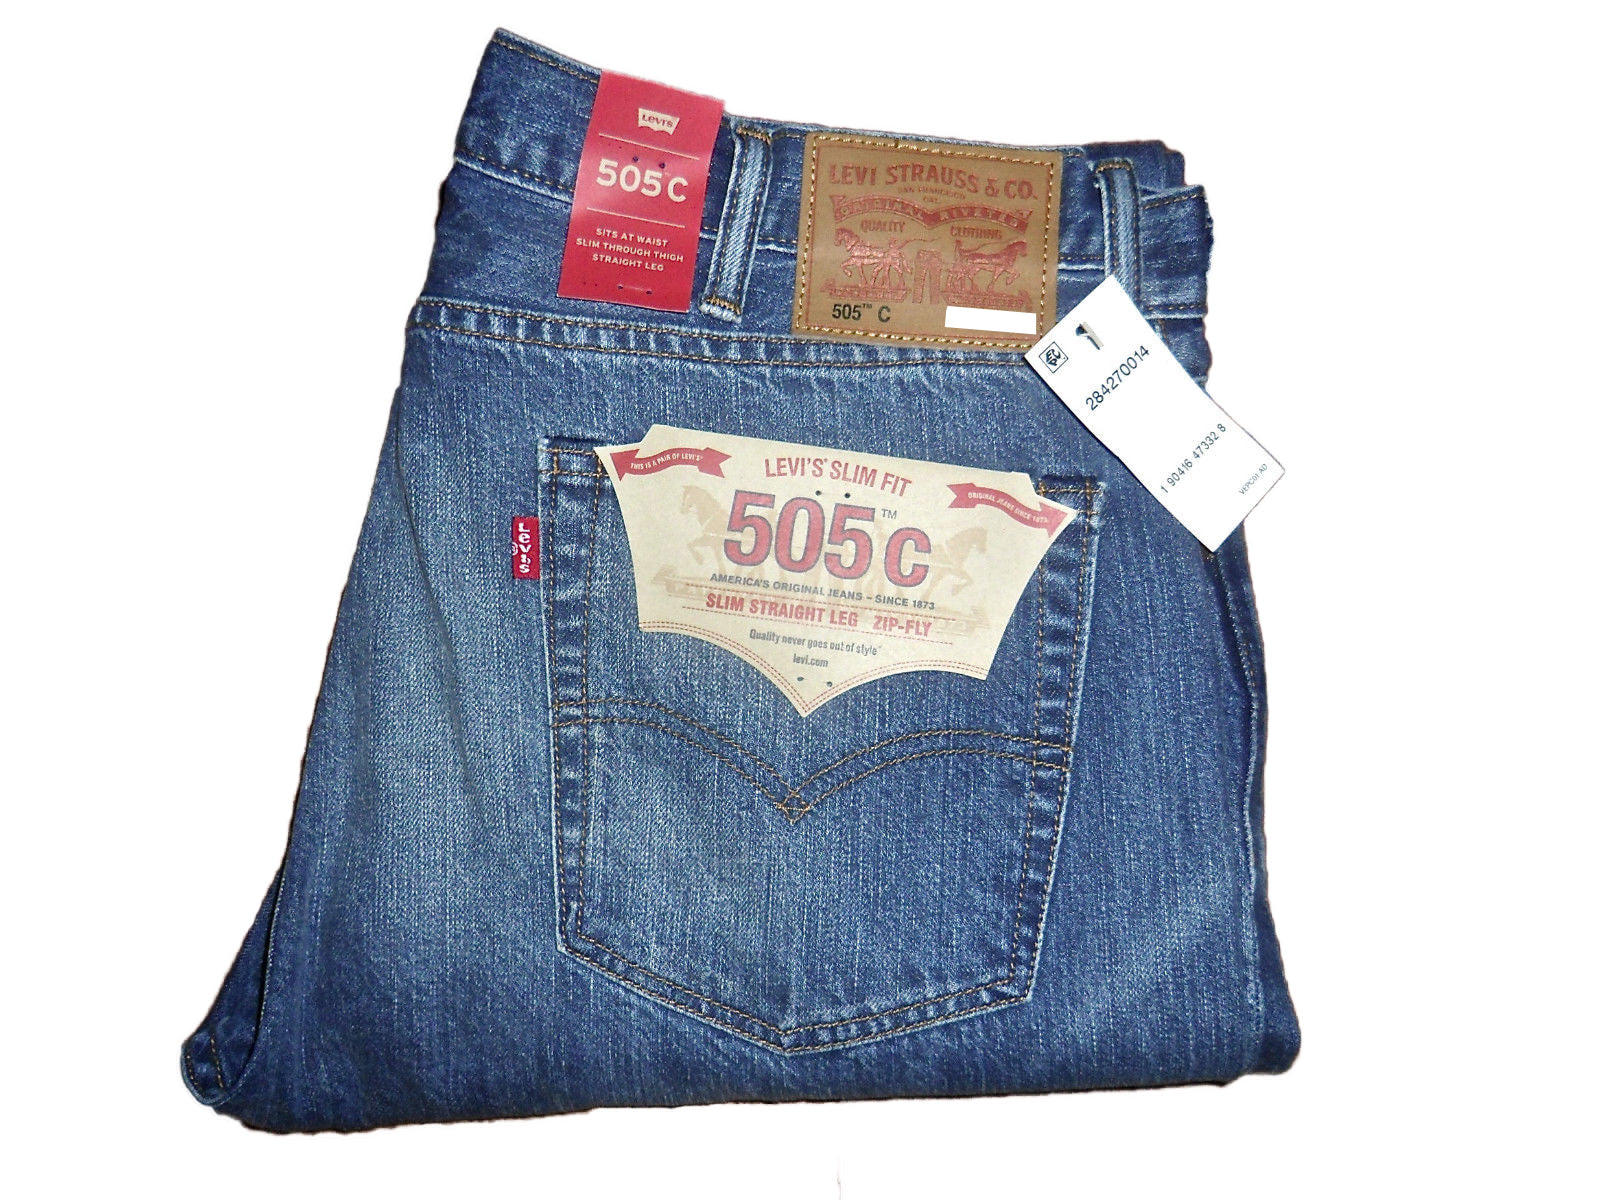 Levi's 505C Slim Straight Leg Zip-Fly, 28x30